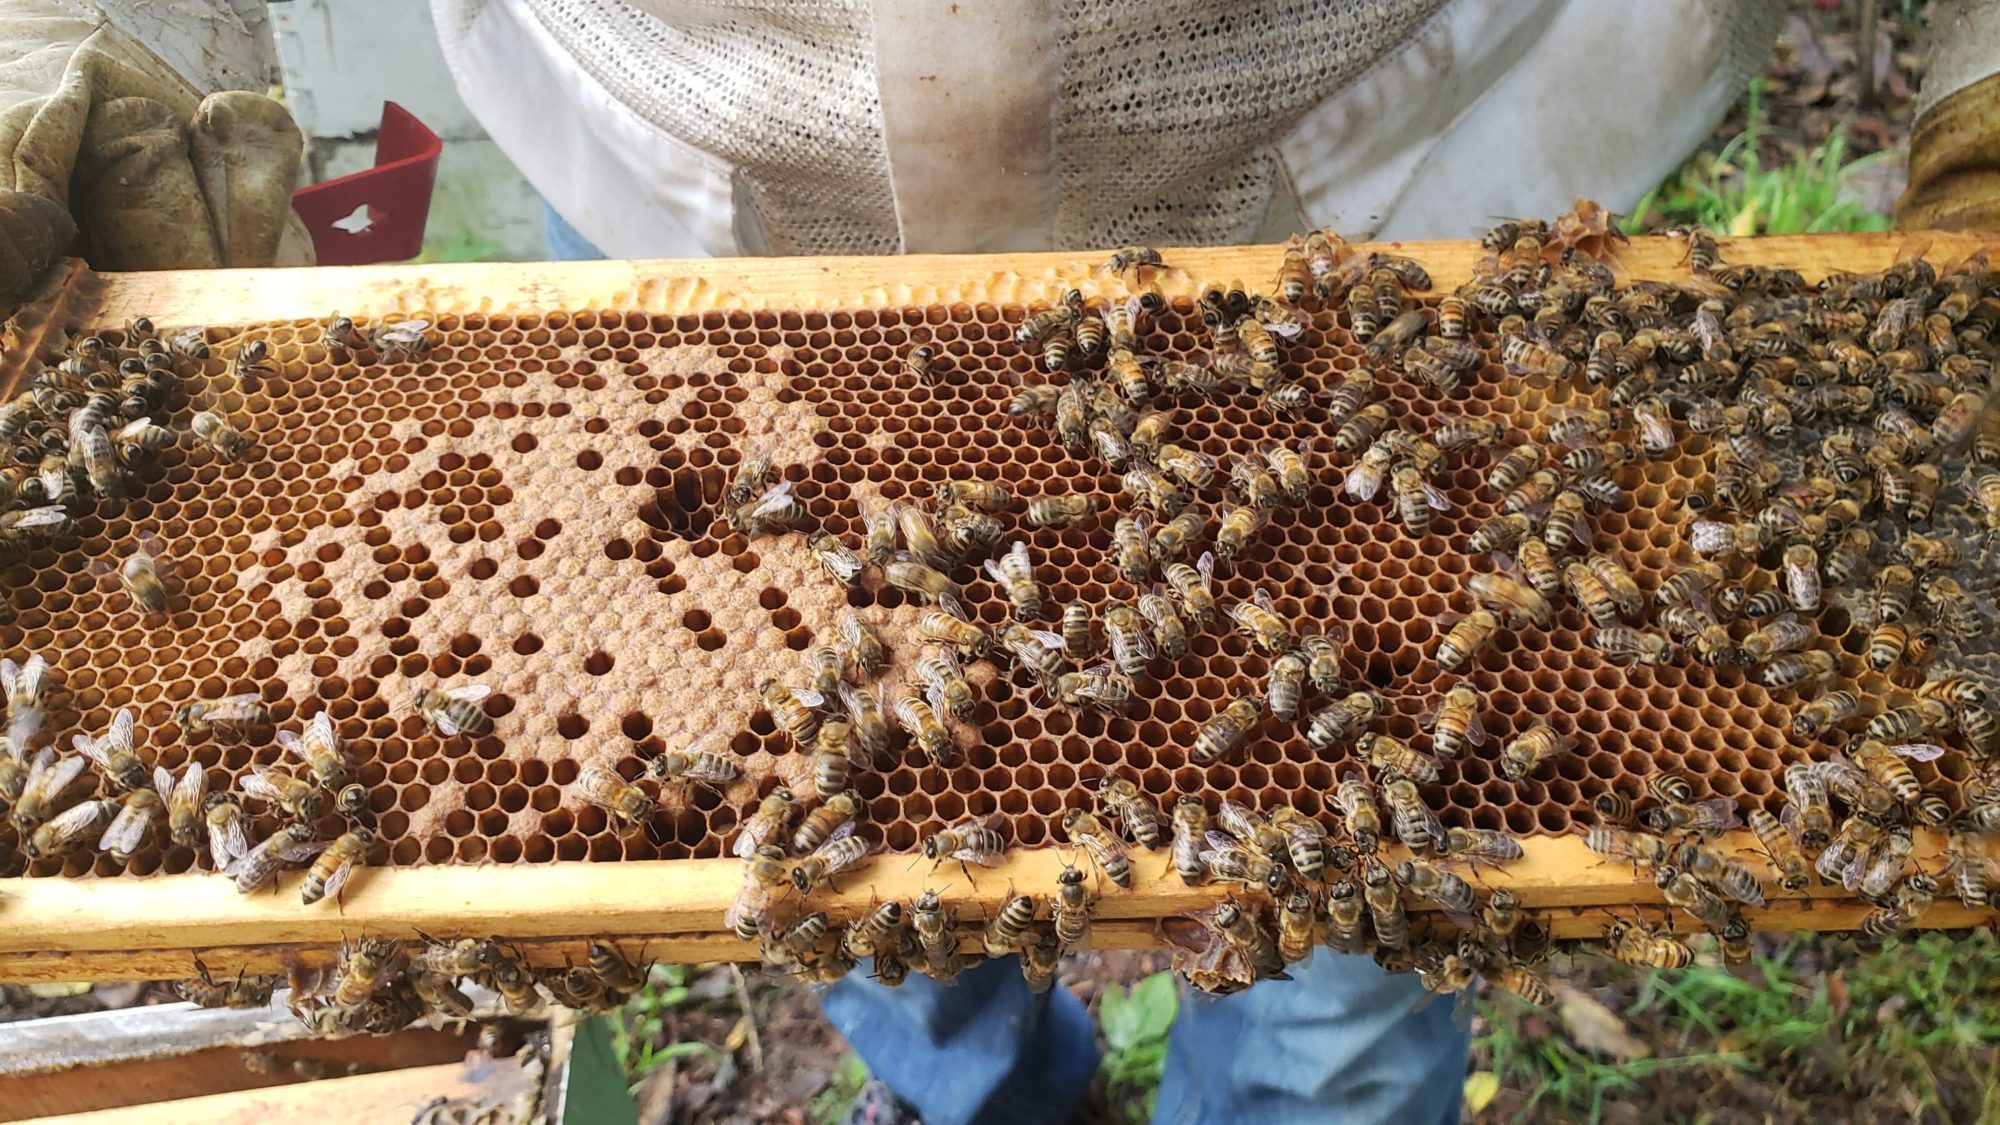 WEC staff holding one of the components of their active bee hive